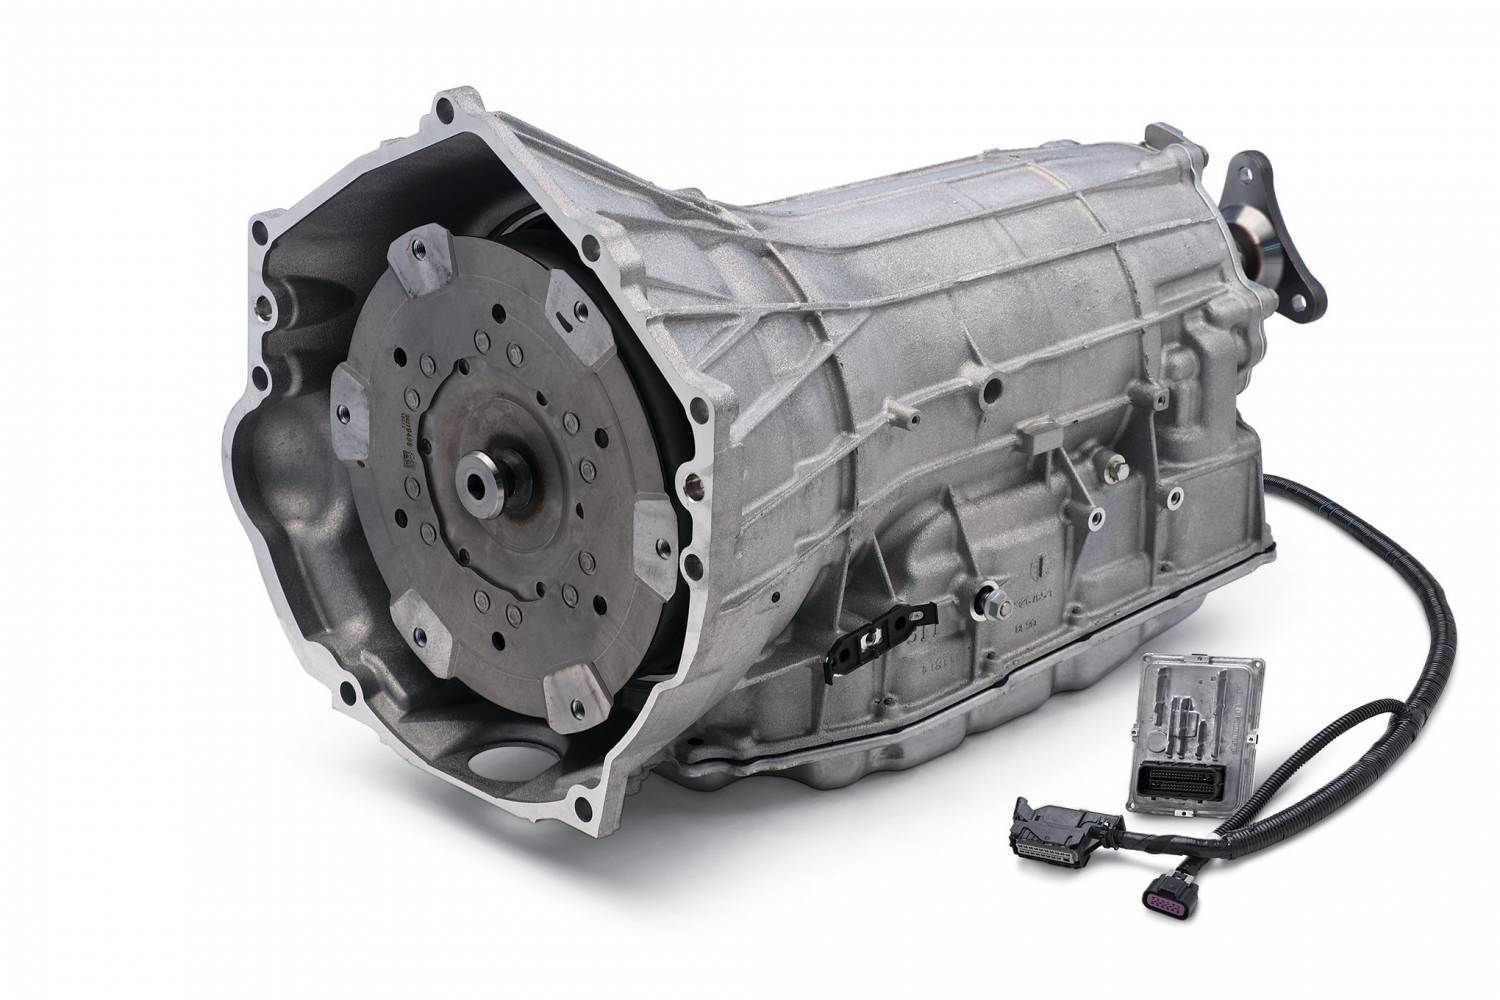 hight resolution of chevrolet performance parts 19371500 8l90e 8 speed automatic transmission package for gm lt1